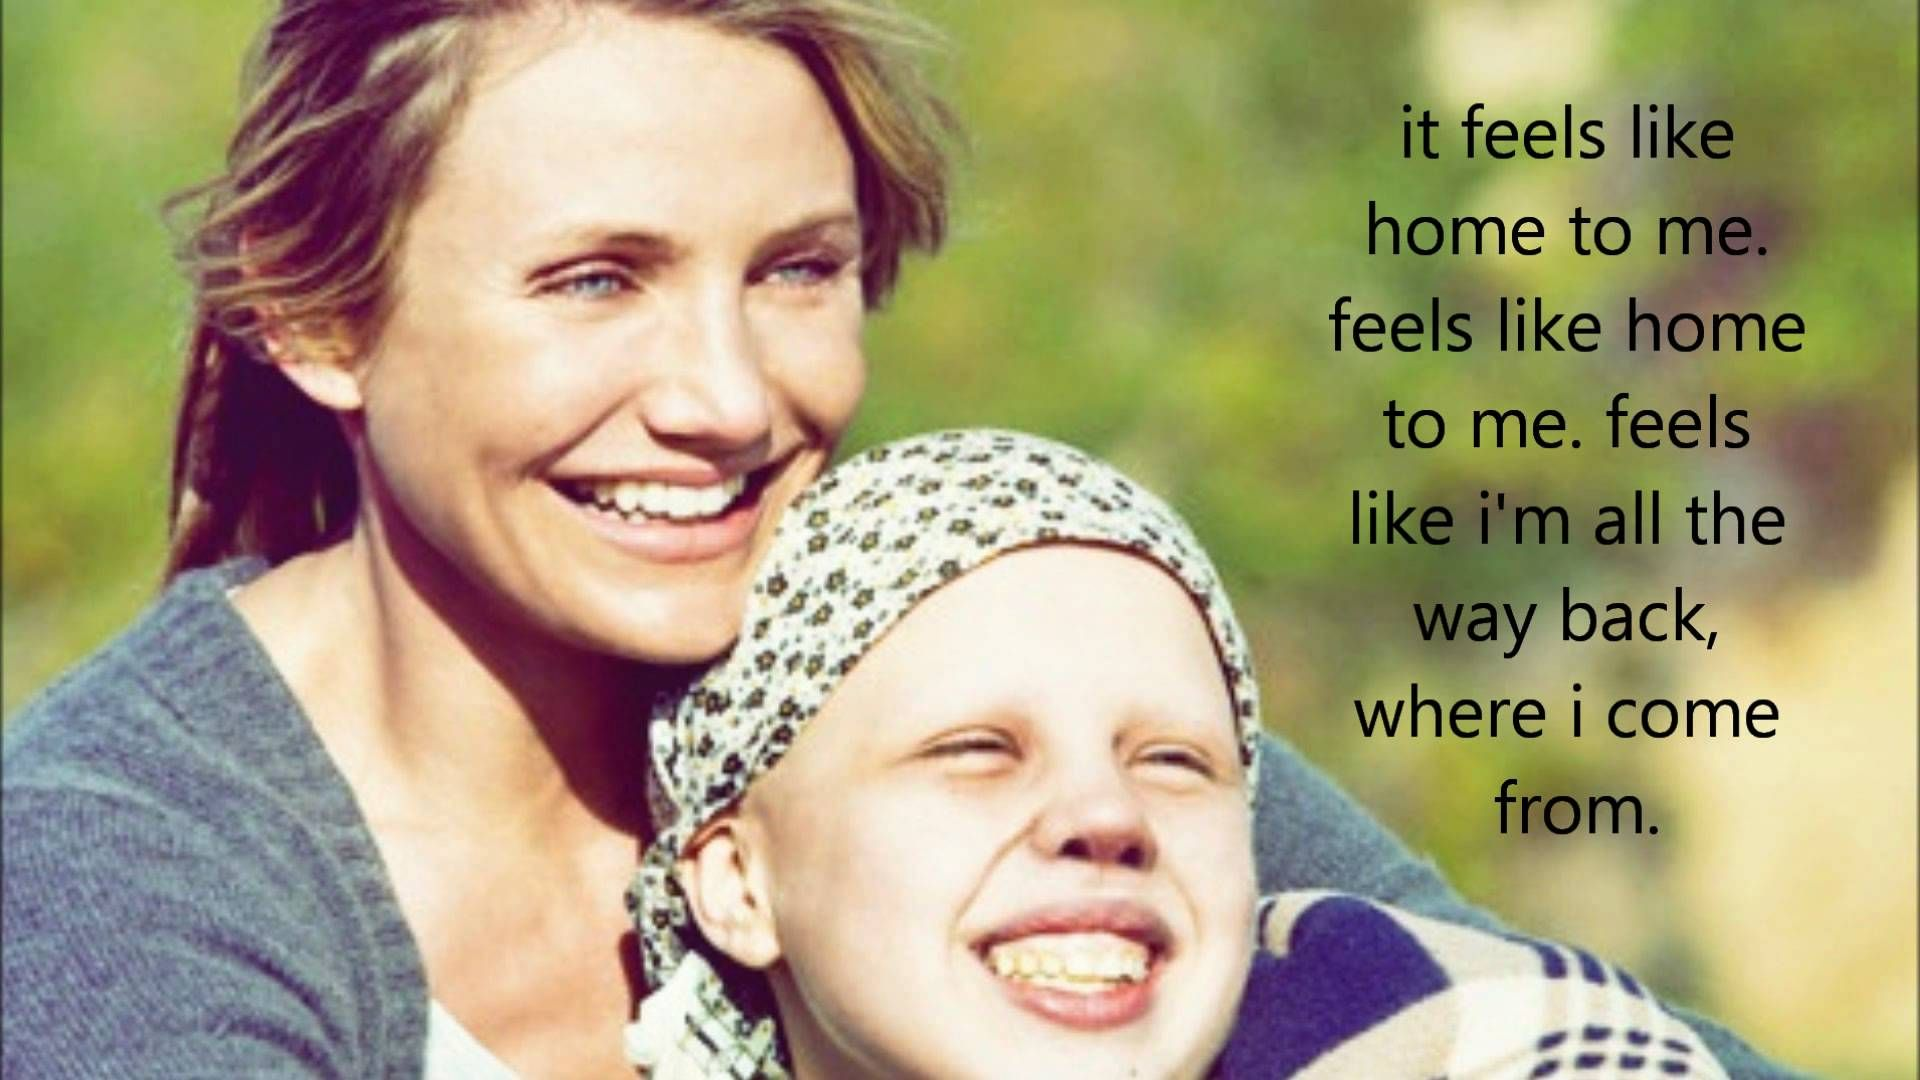 Feels Like Home Edwina Hayes Lyrics (My Sister's Keeper